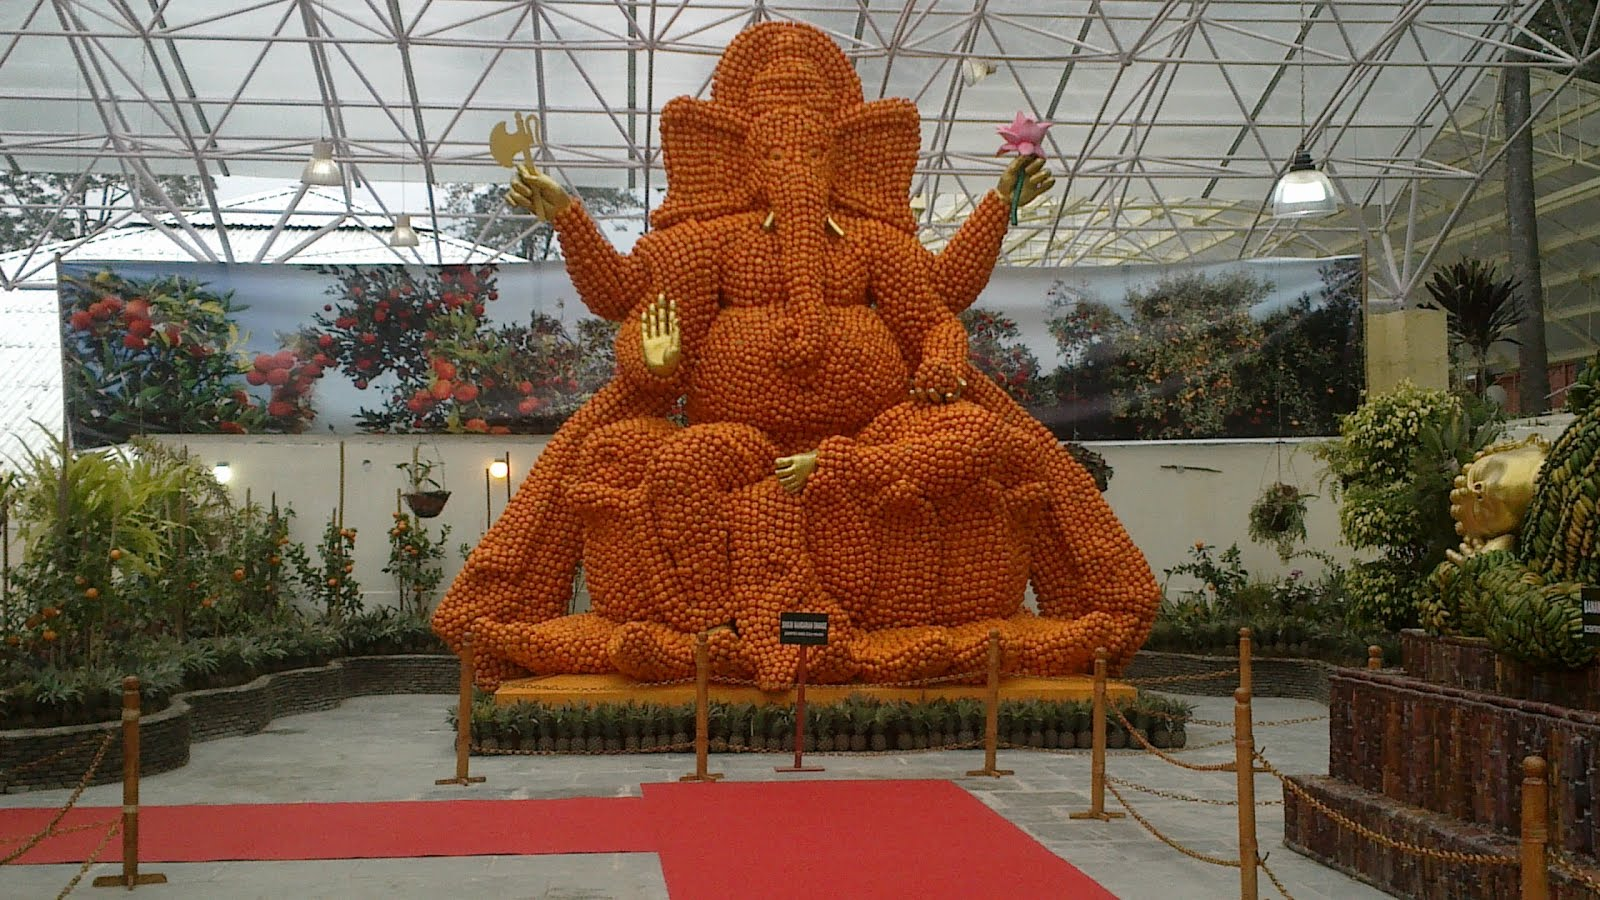 Lord Ganesh made of oranges